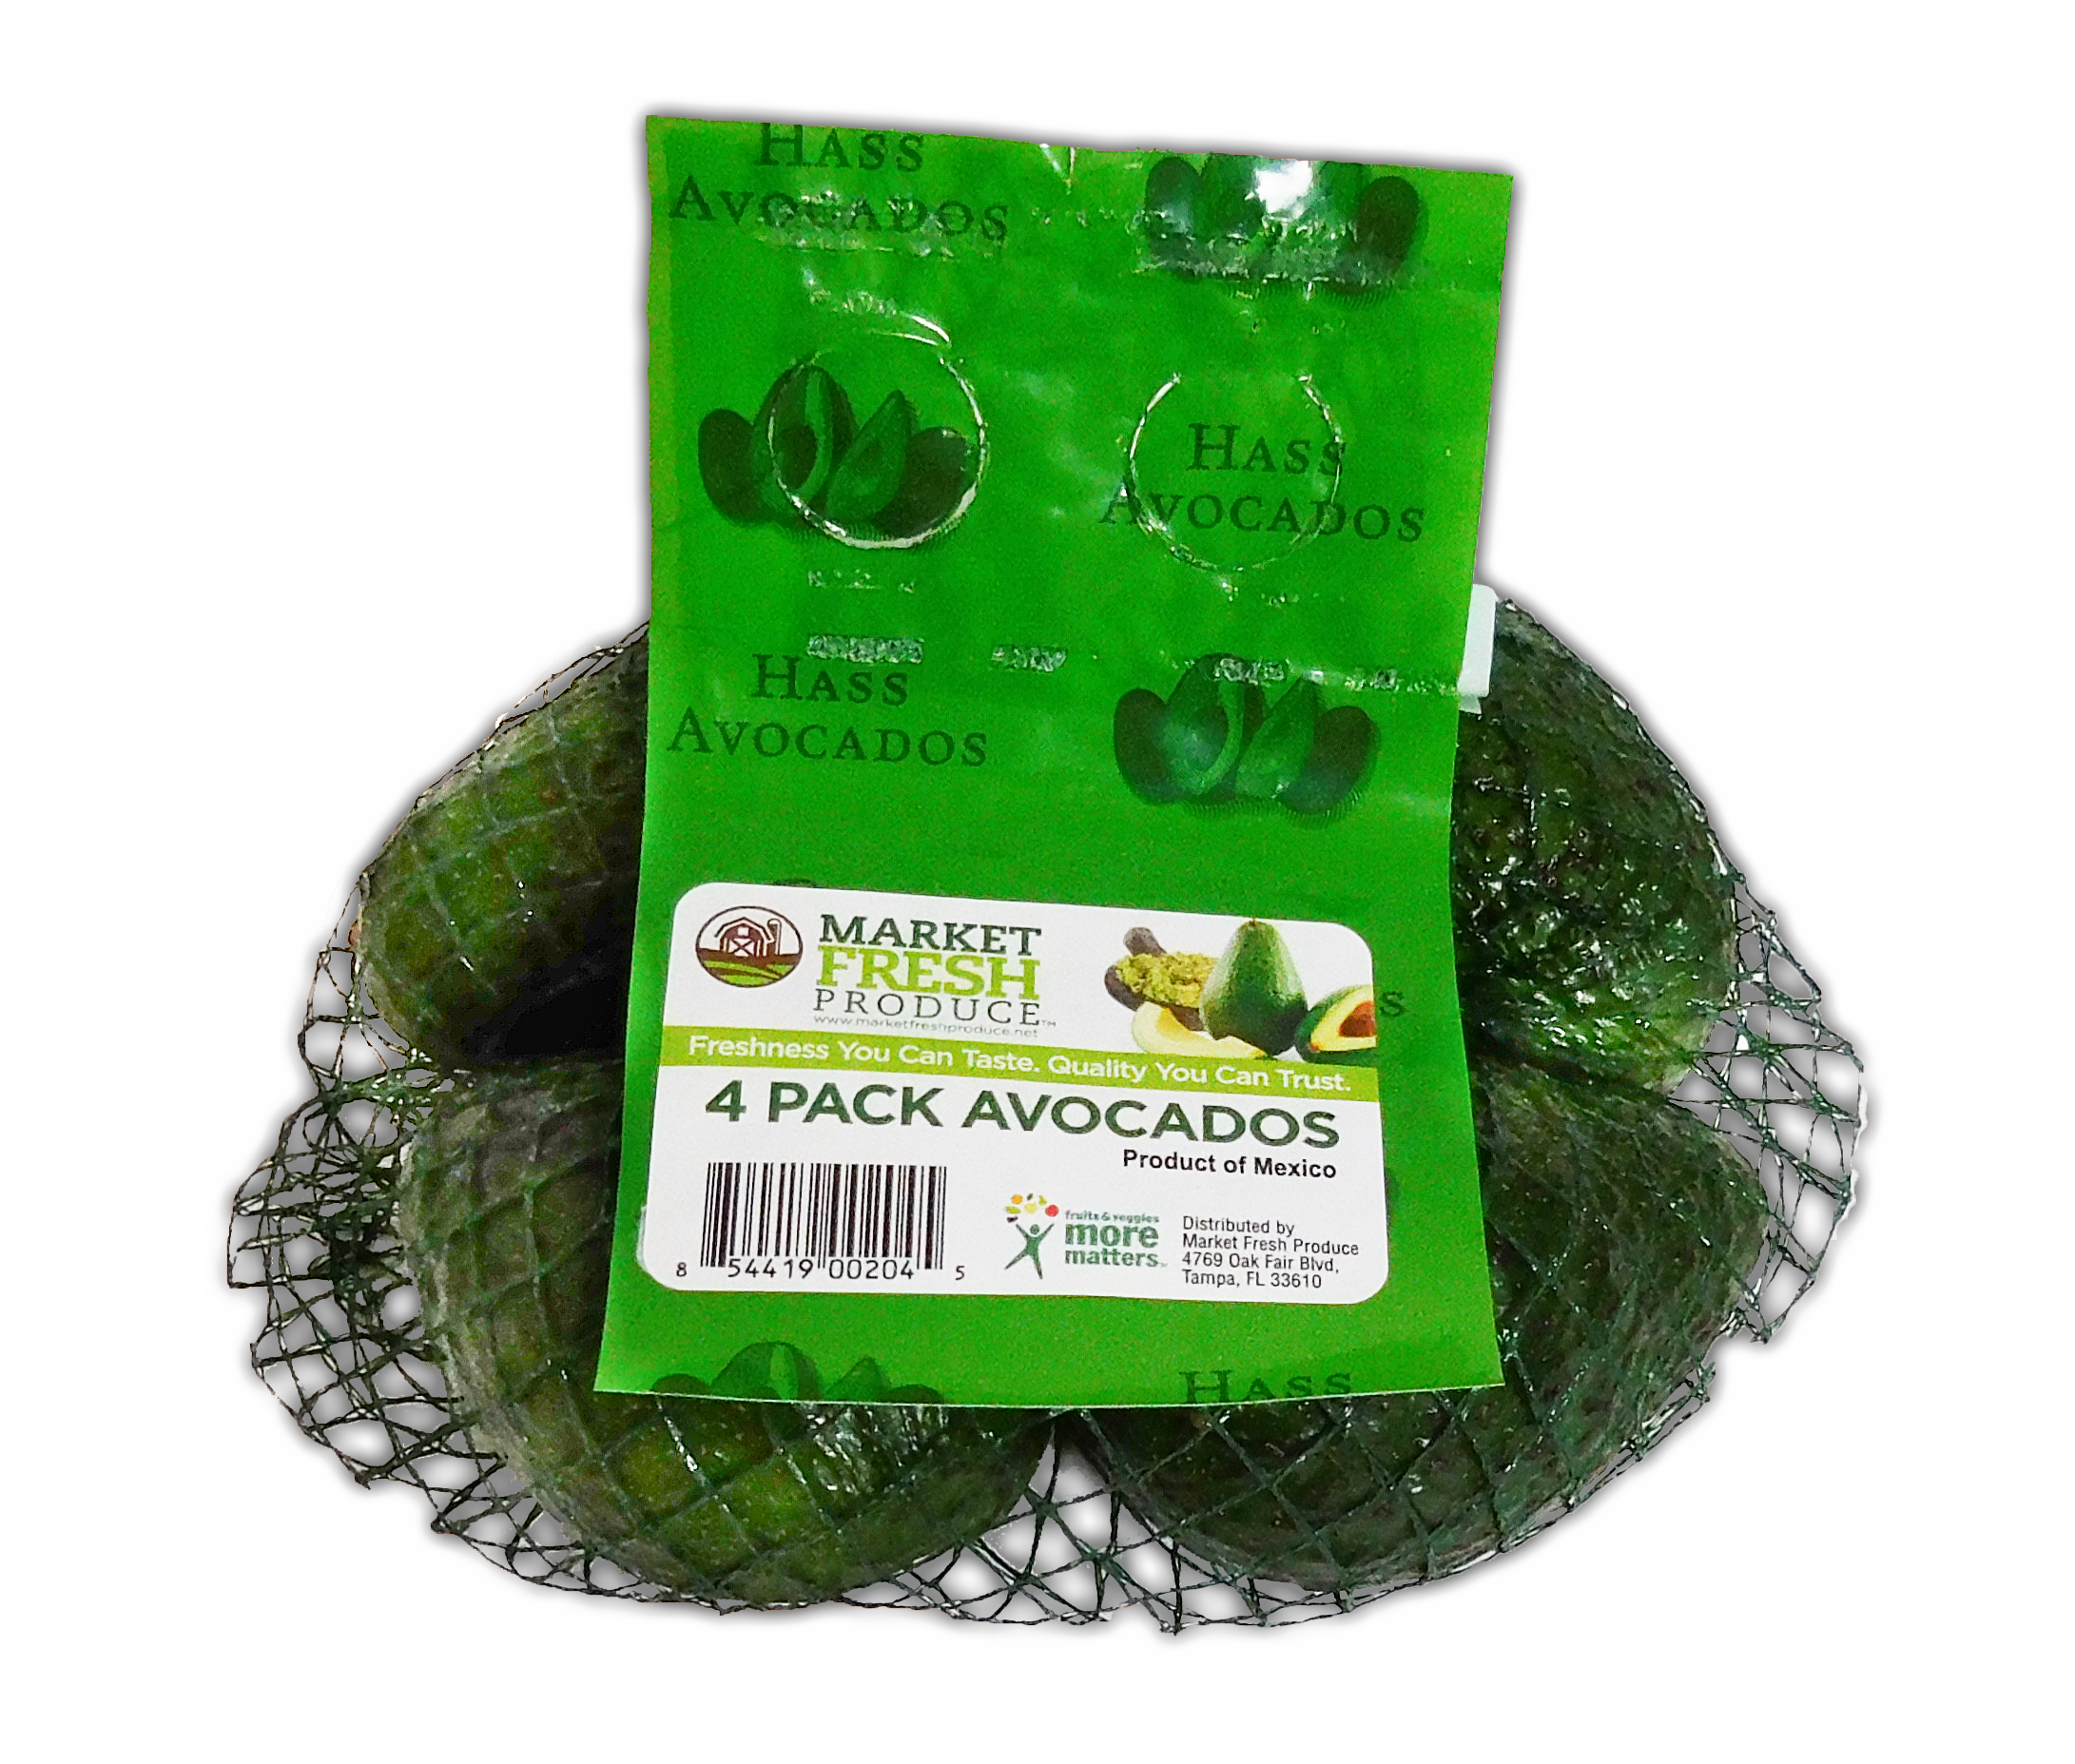 Hass Avocado Bags - We can supply 4 pack Hass avocado bags to meet your consumer needs! Our bags provide the best quality fruit and are packed 18 bags per case or can be customized to meet your requirements!